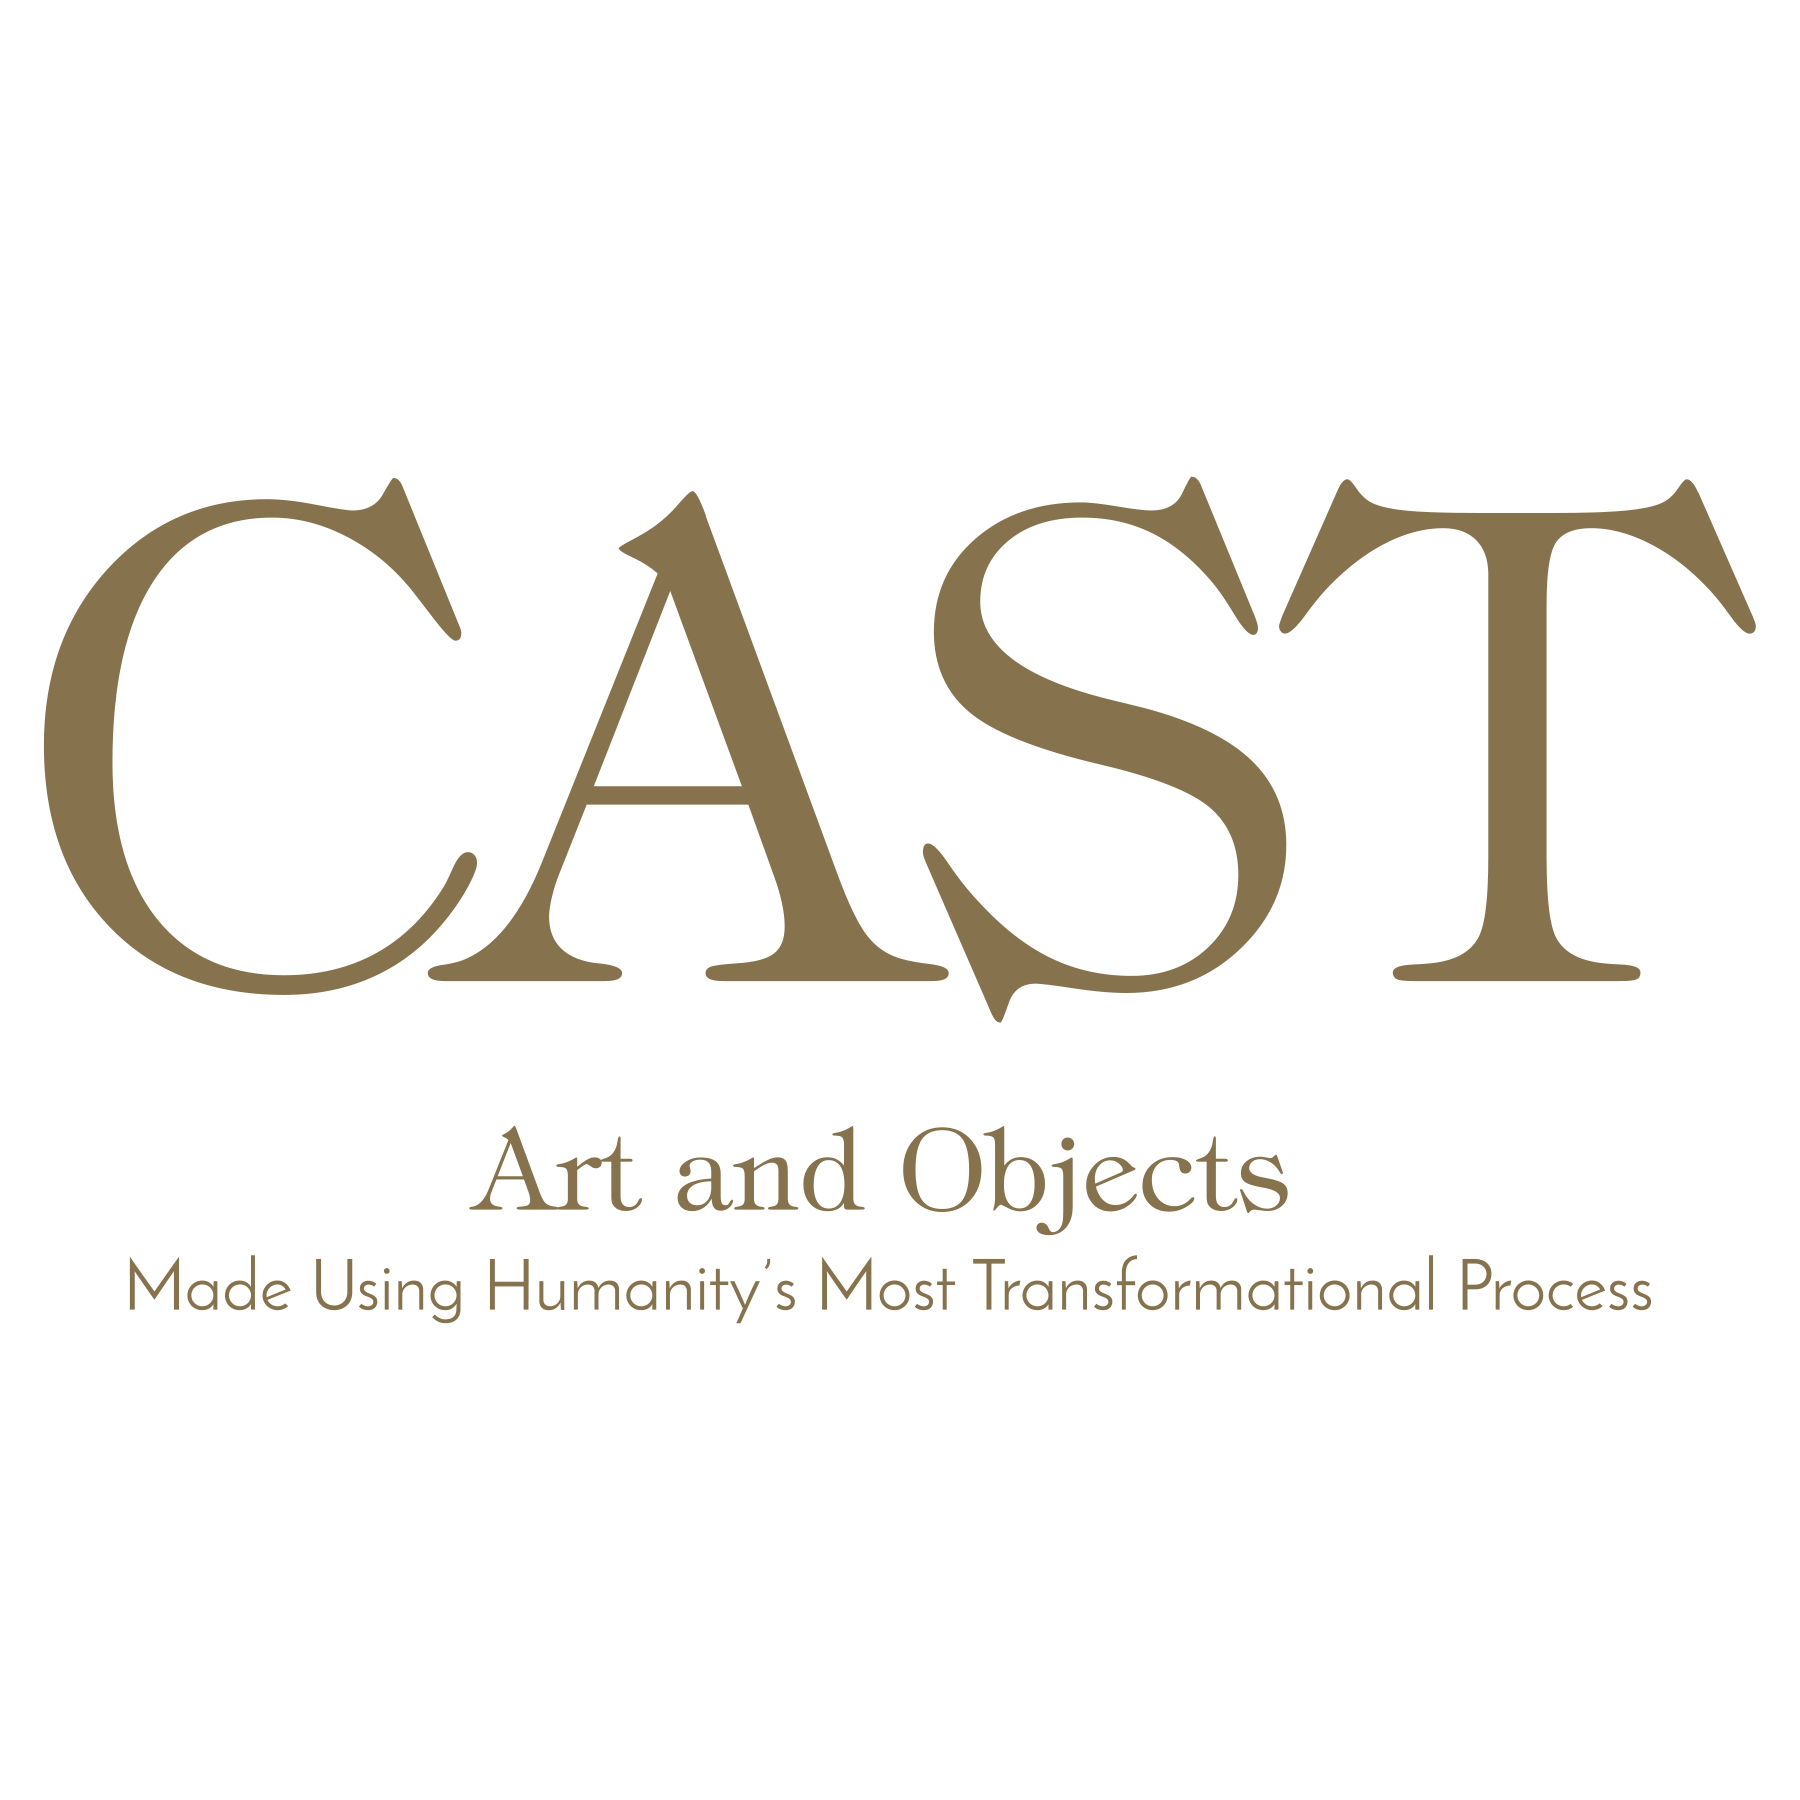 CAST logo (with subtitle) available for download